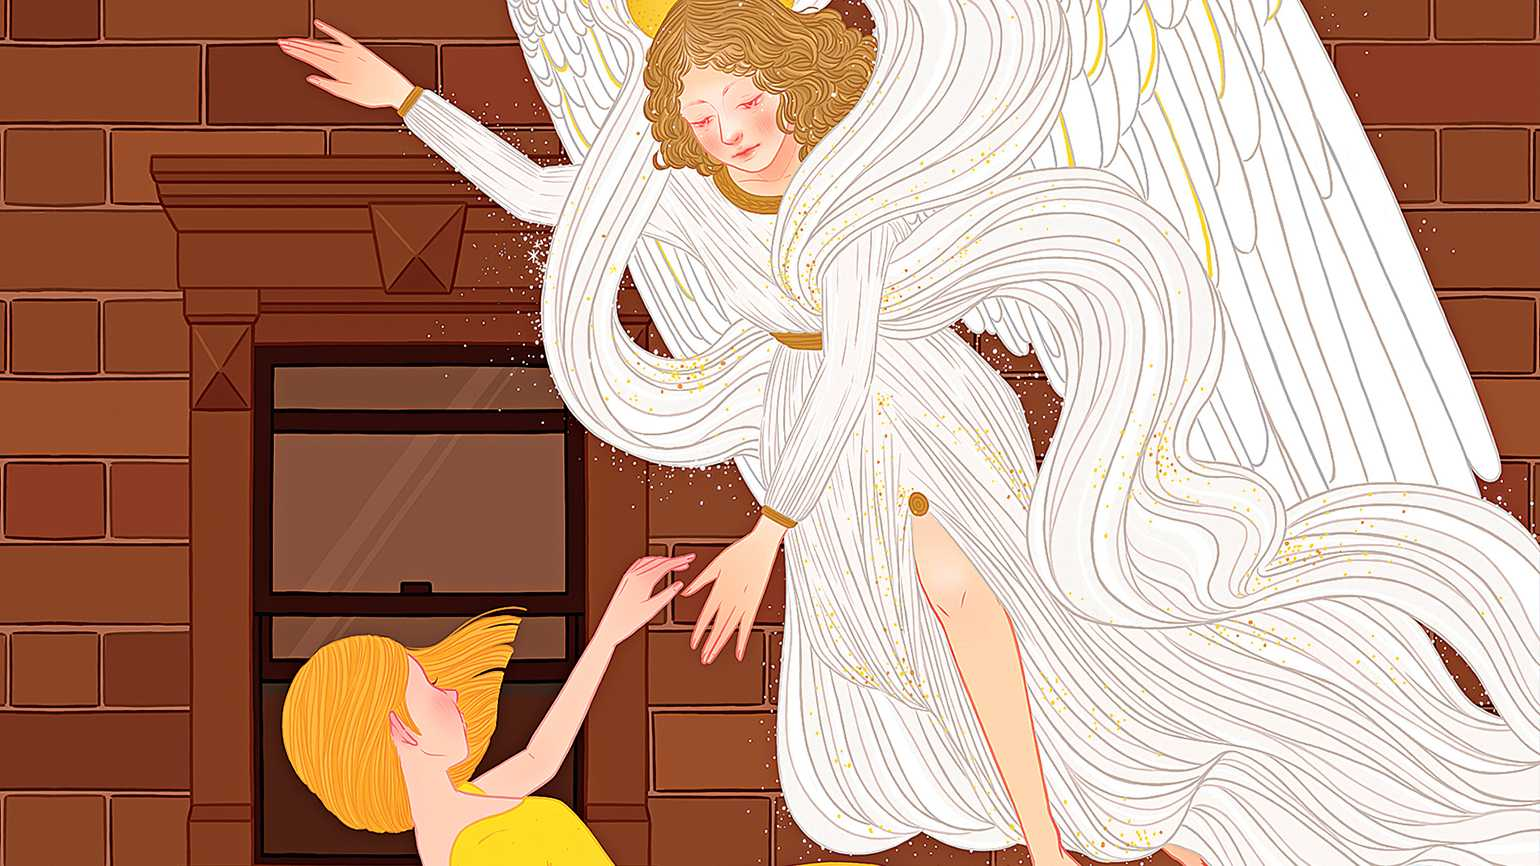 An artist's rendering of an angel reaching for a woman who is falling to the ground